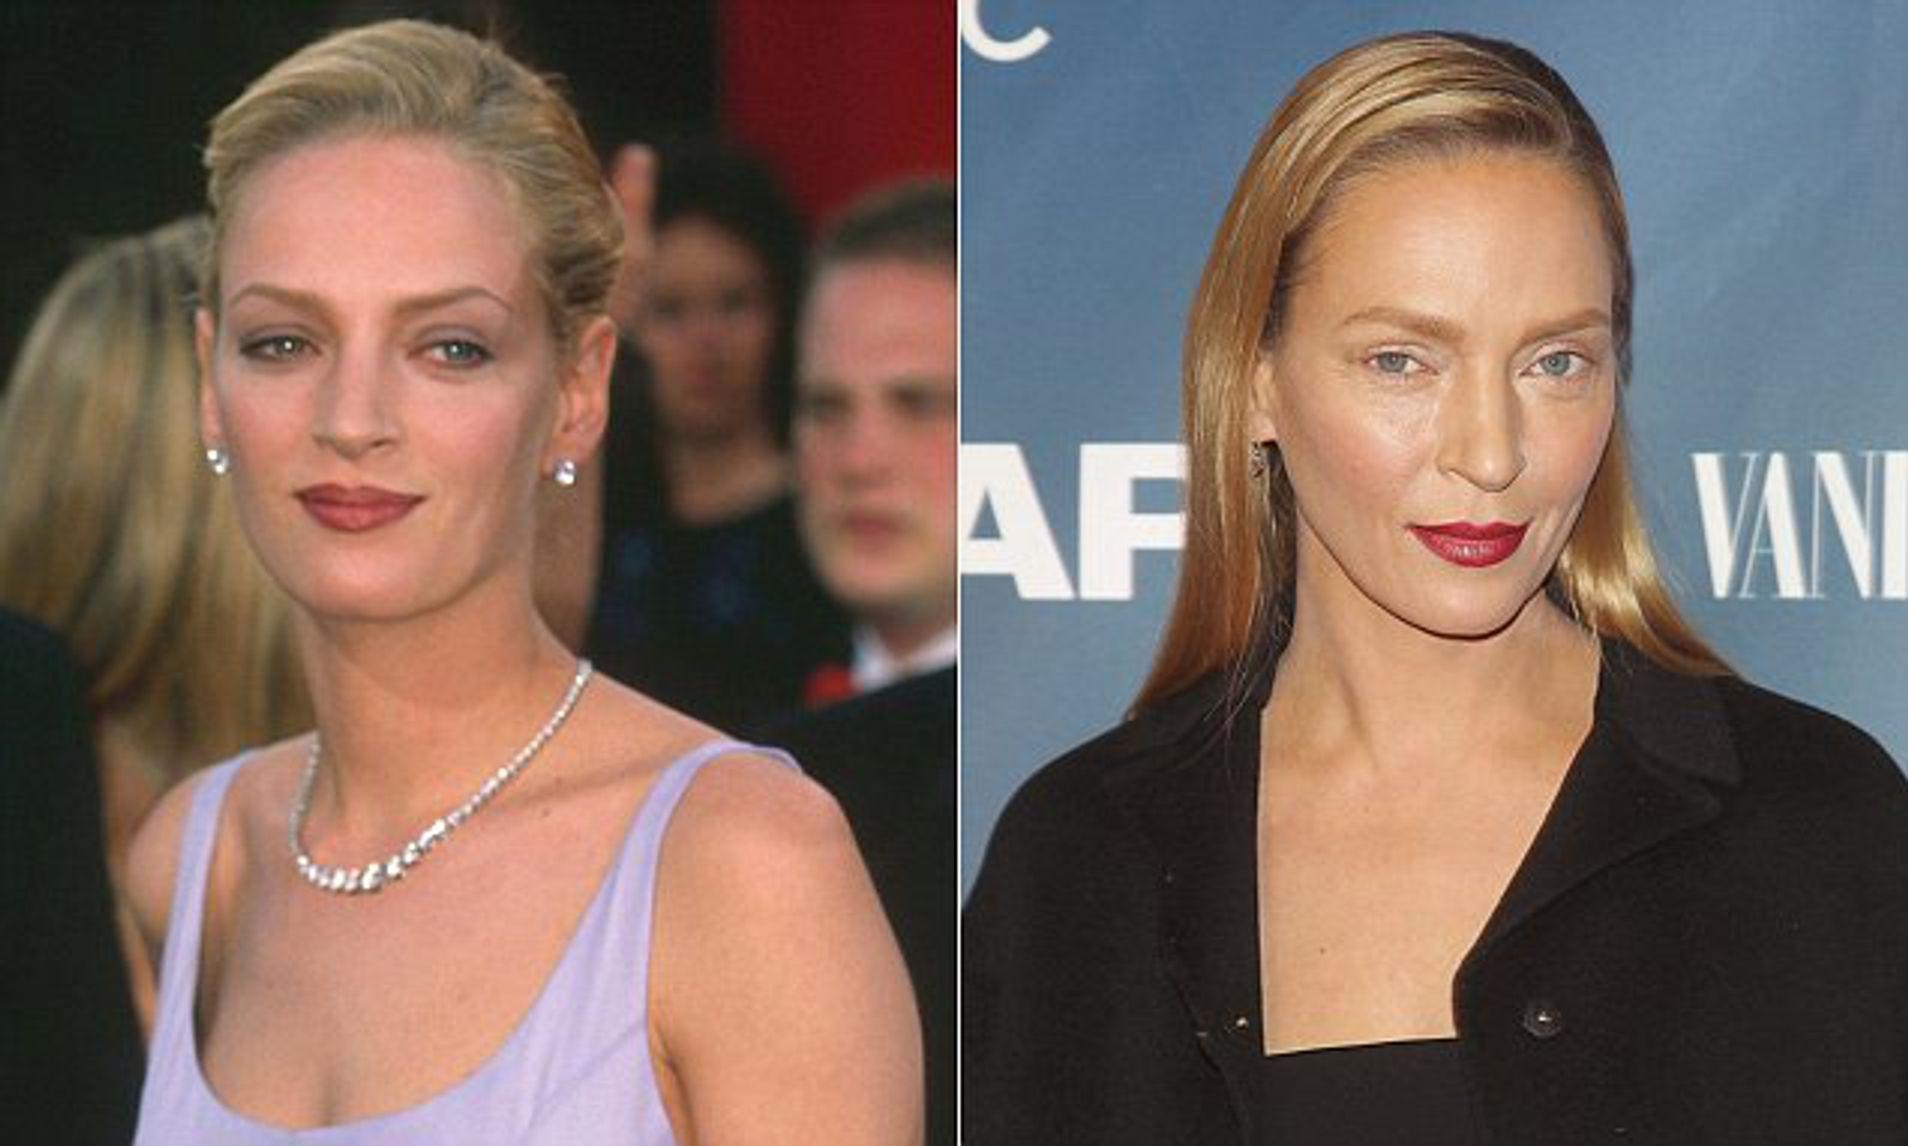 The Biggest Celebrity Plastic Surgery Fails Of All Time